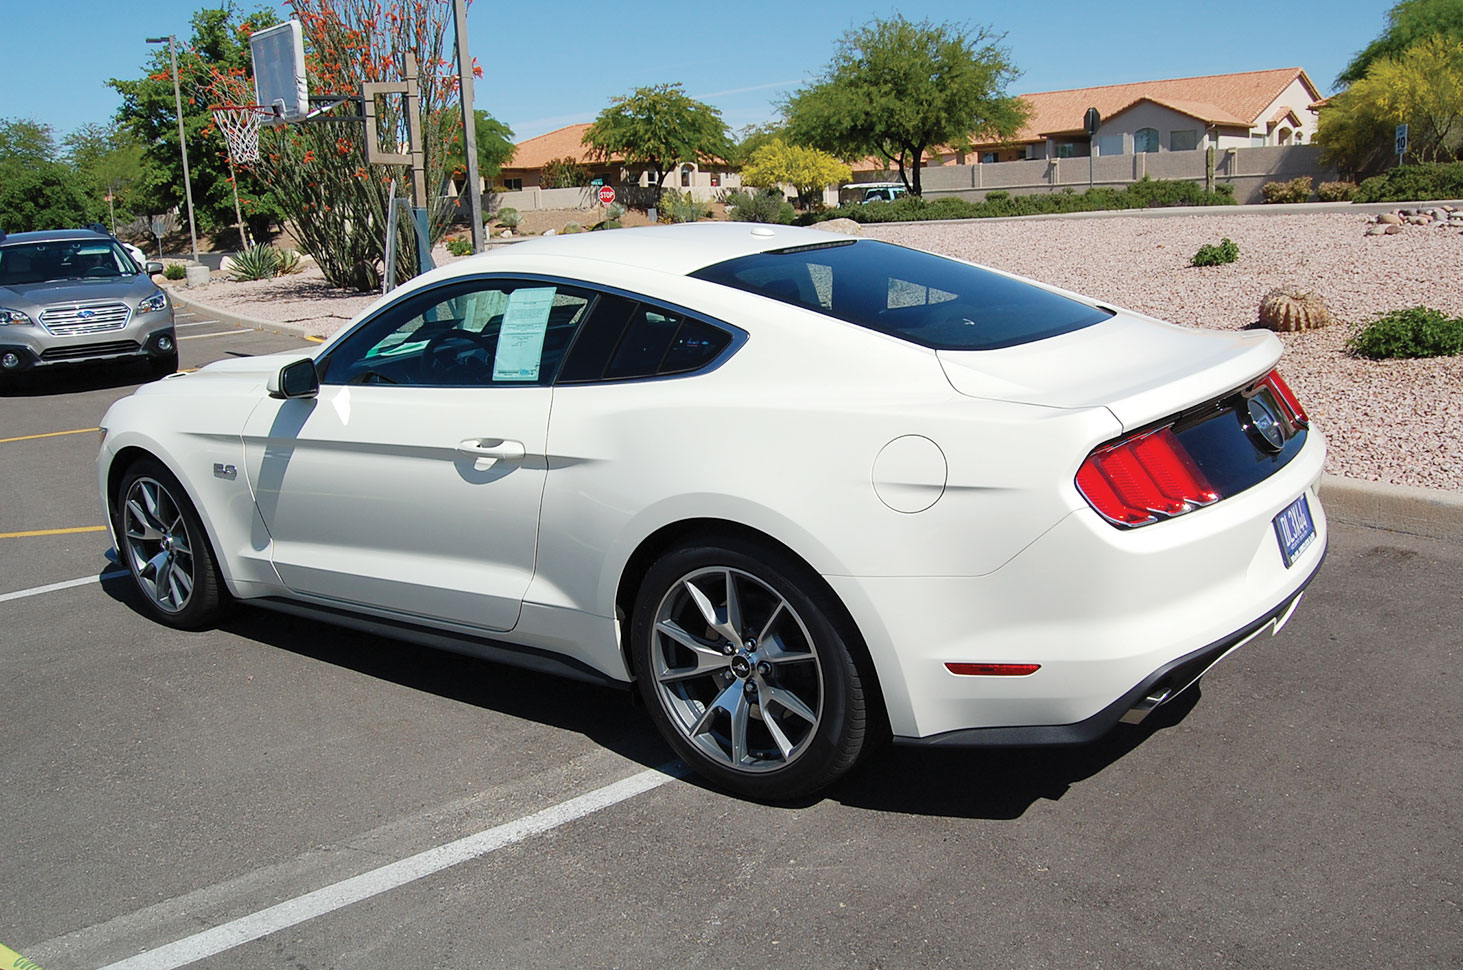 SBCO will raffle off this 2015 Ford Mustang 50th Anniversary Edition.